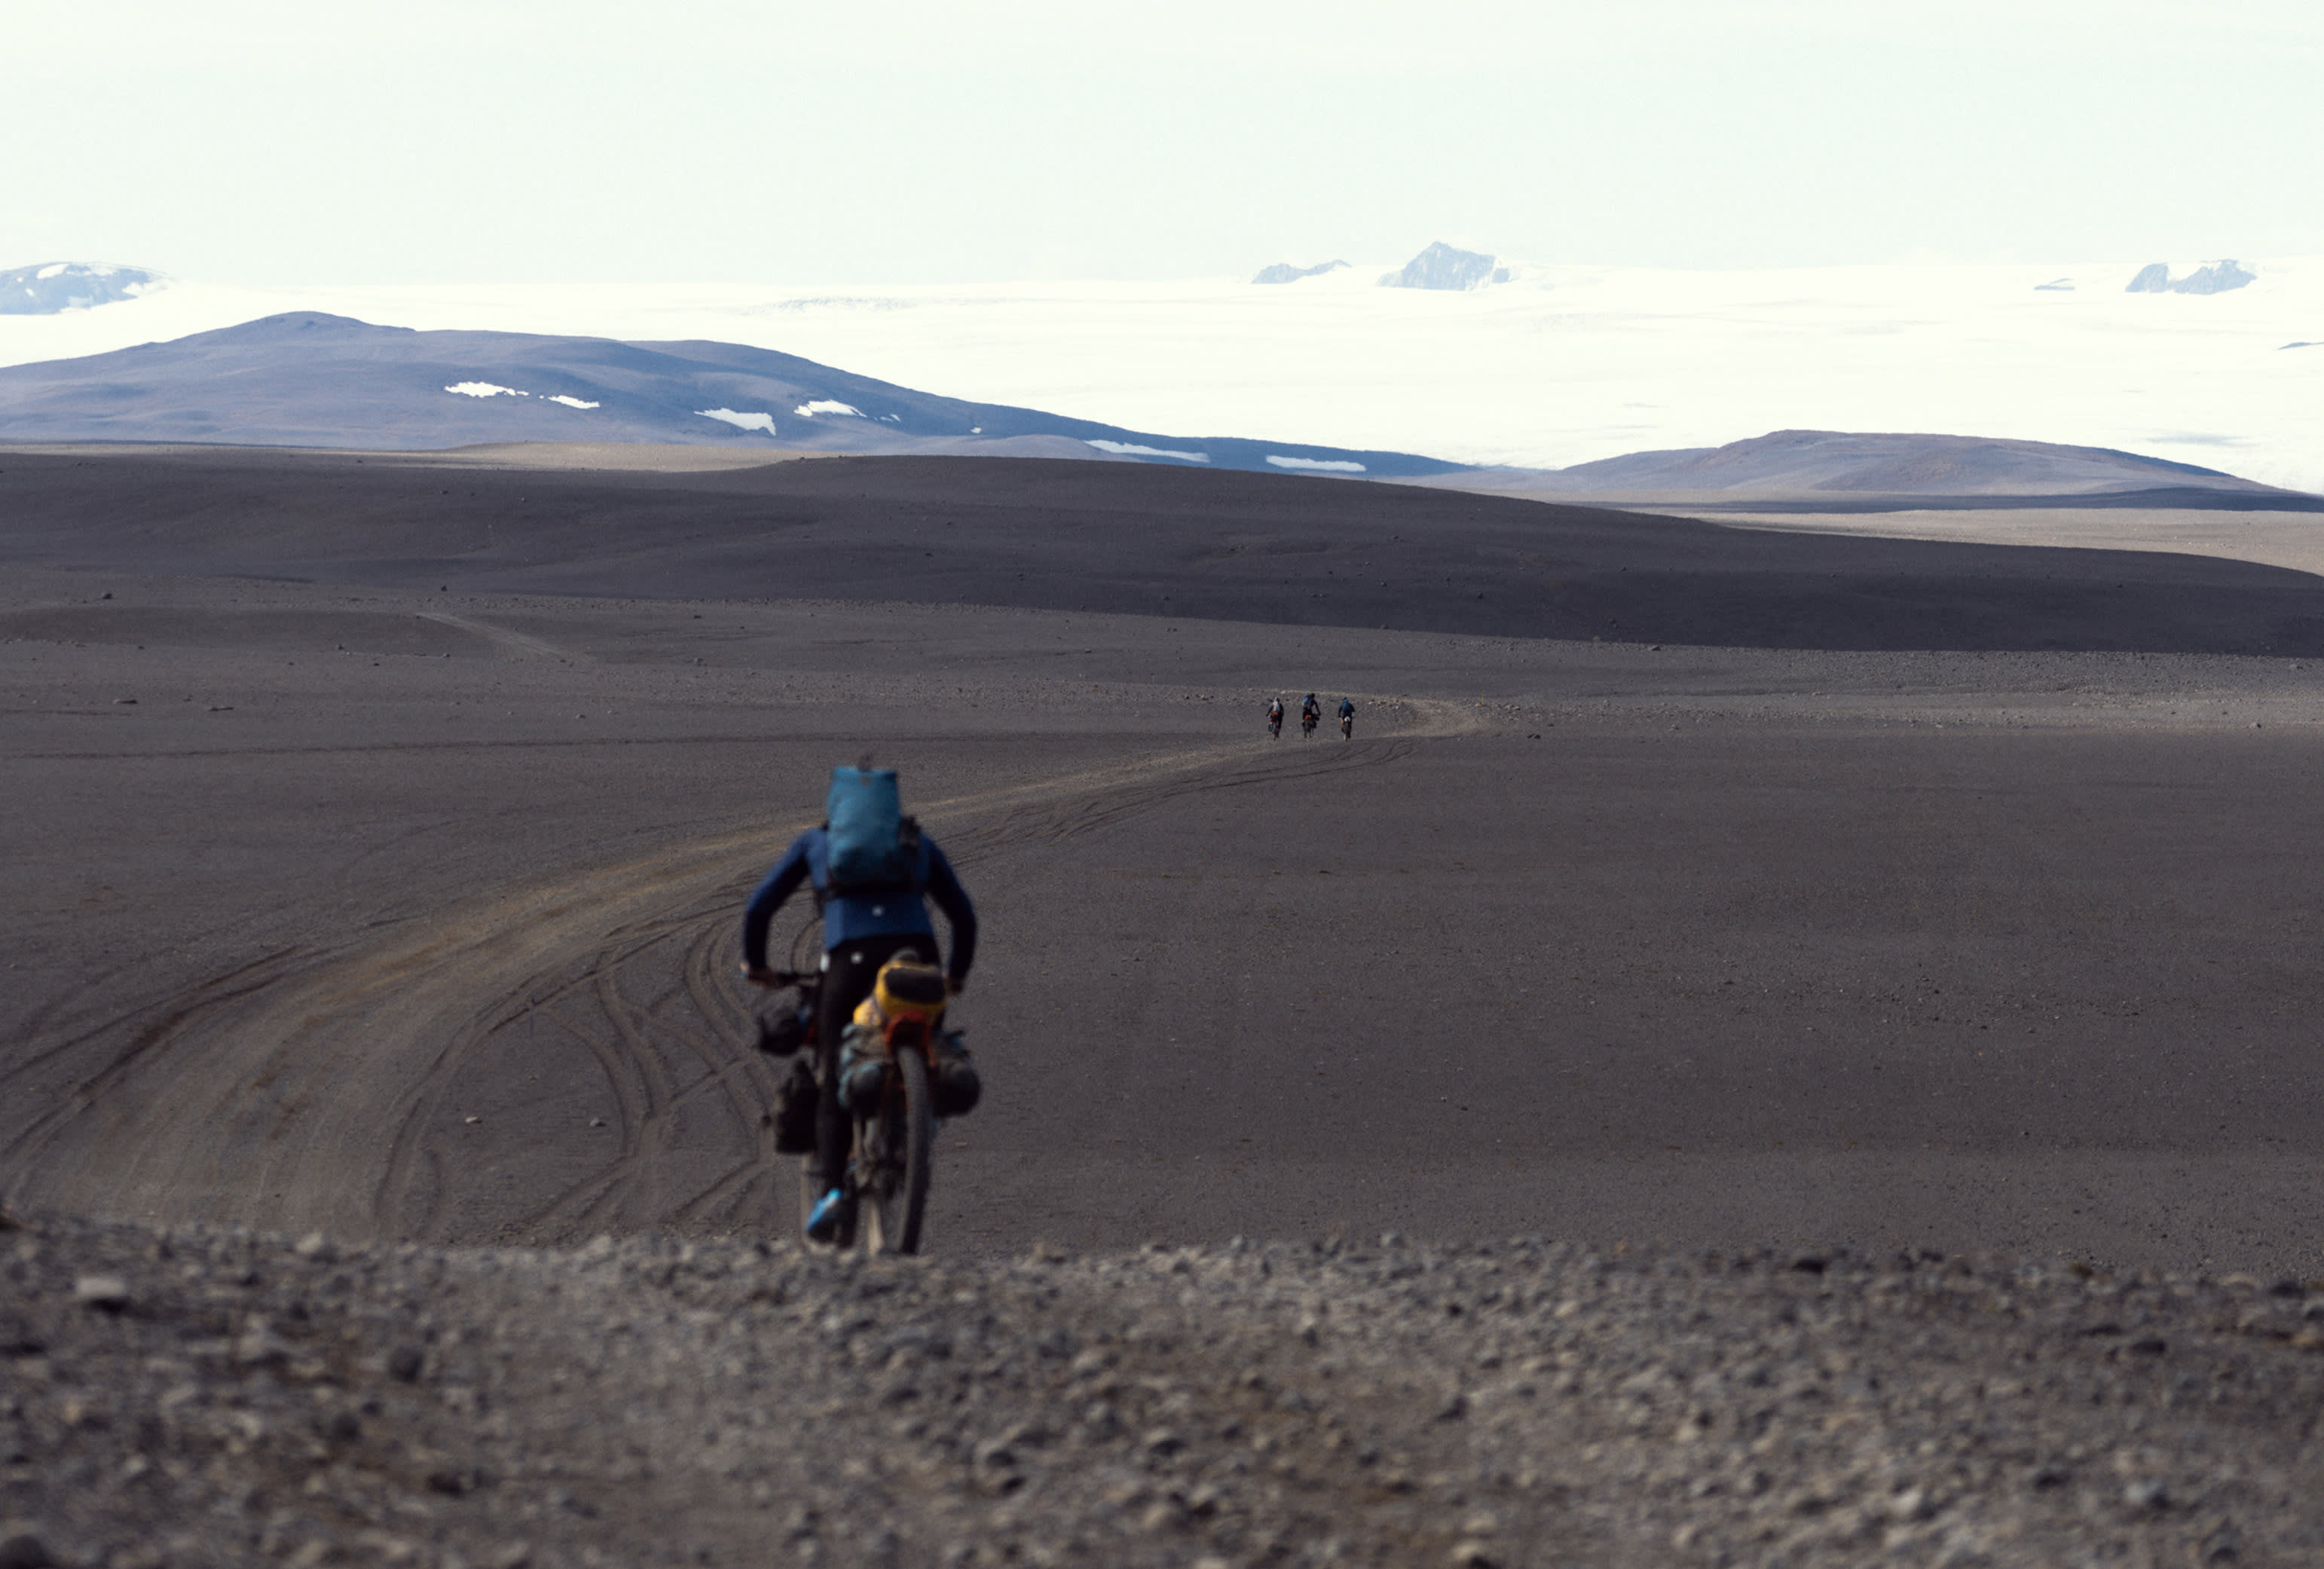 Man riding a bike in wilderness behind a group